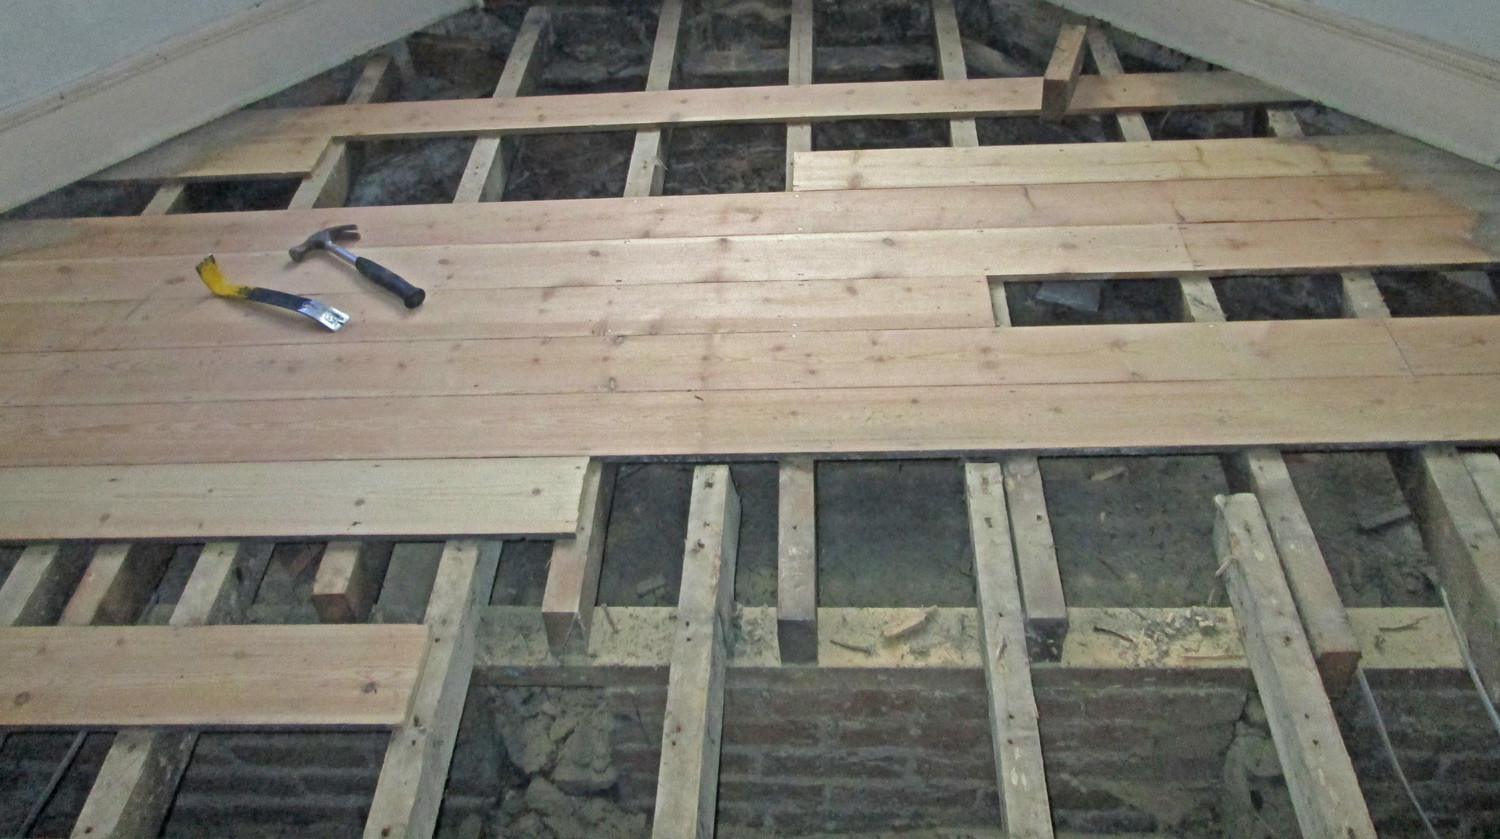 Glue Down Hardwood Floor Problems Of How to Install Hardwood Floors Directly Over Joists Wood Floor Fitting within Wood Flooring Nailed Down Over Joists